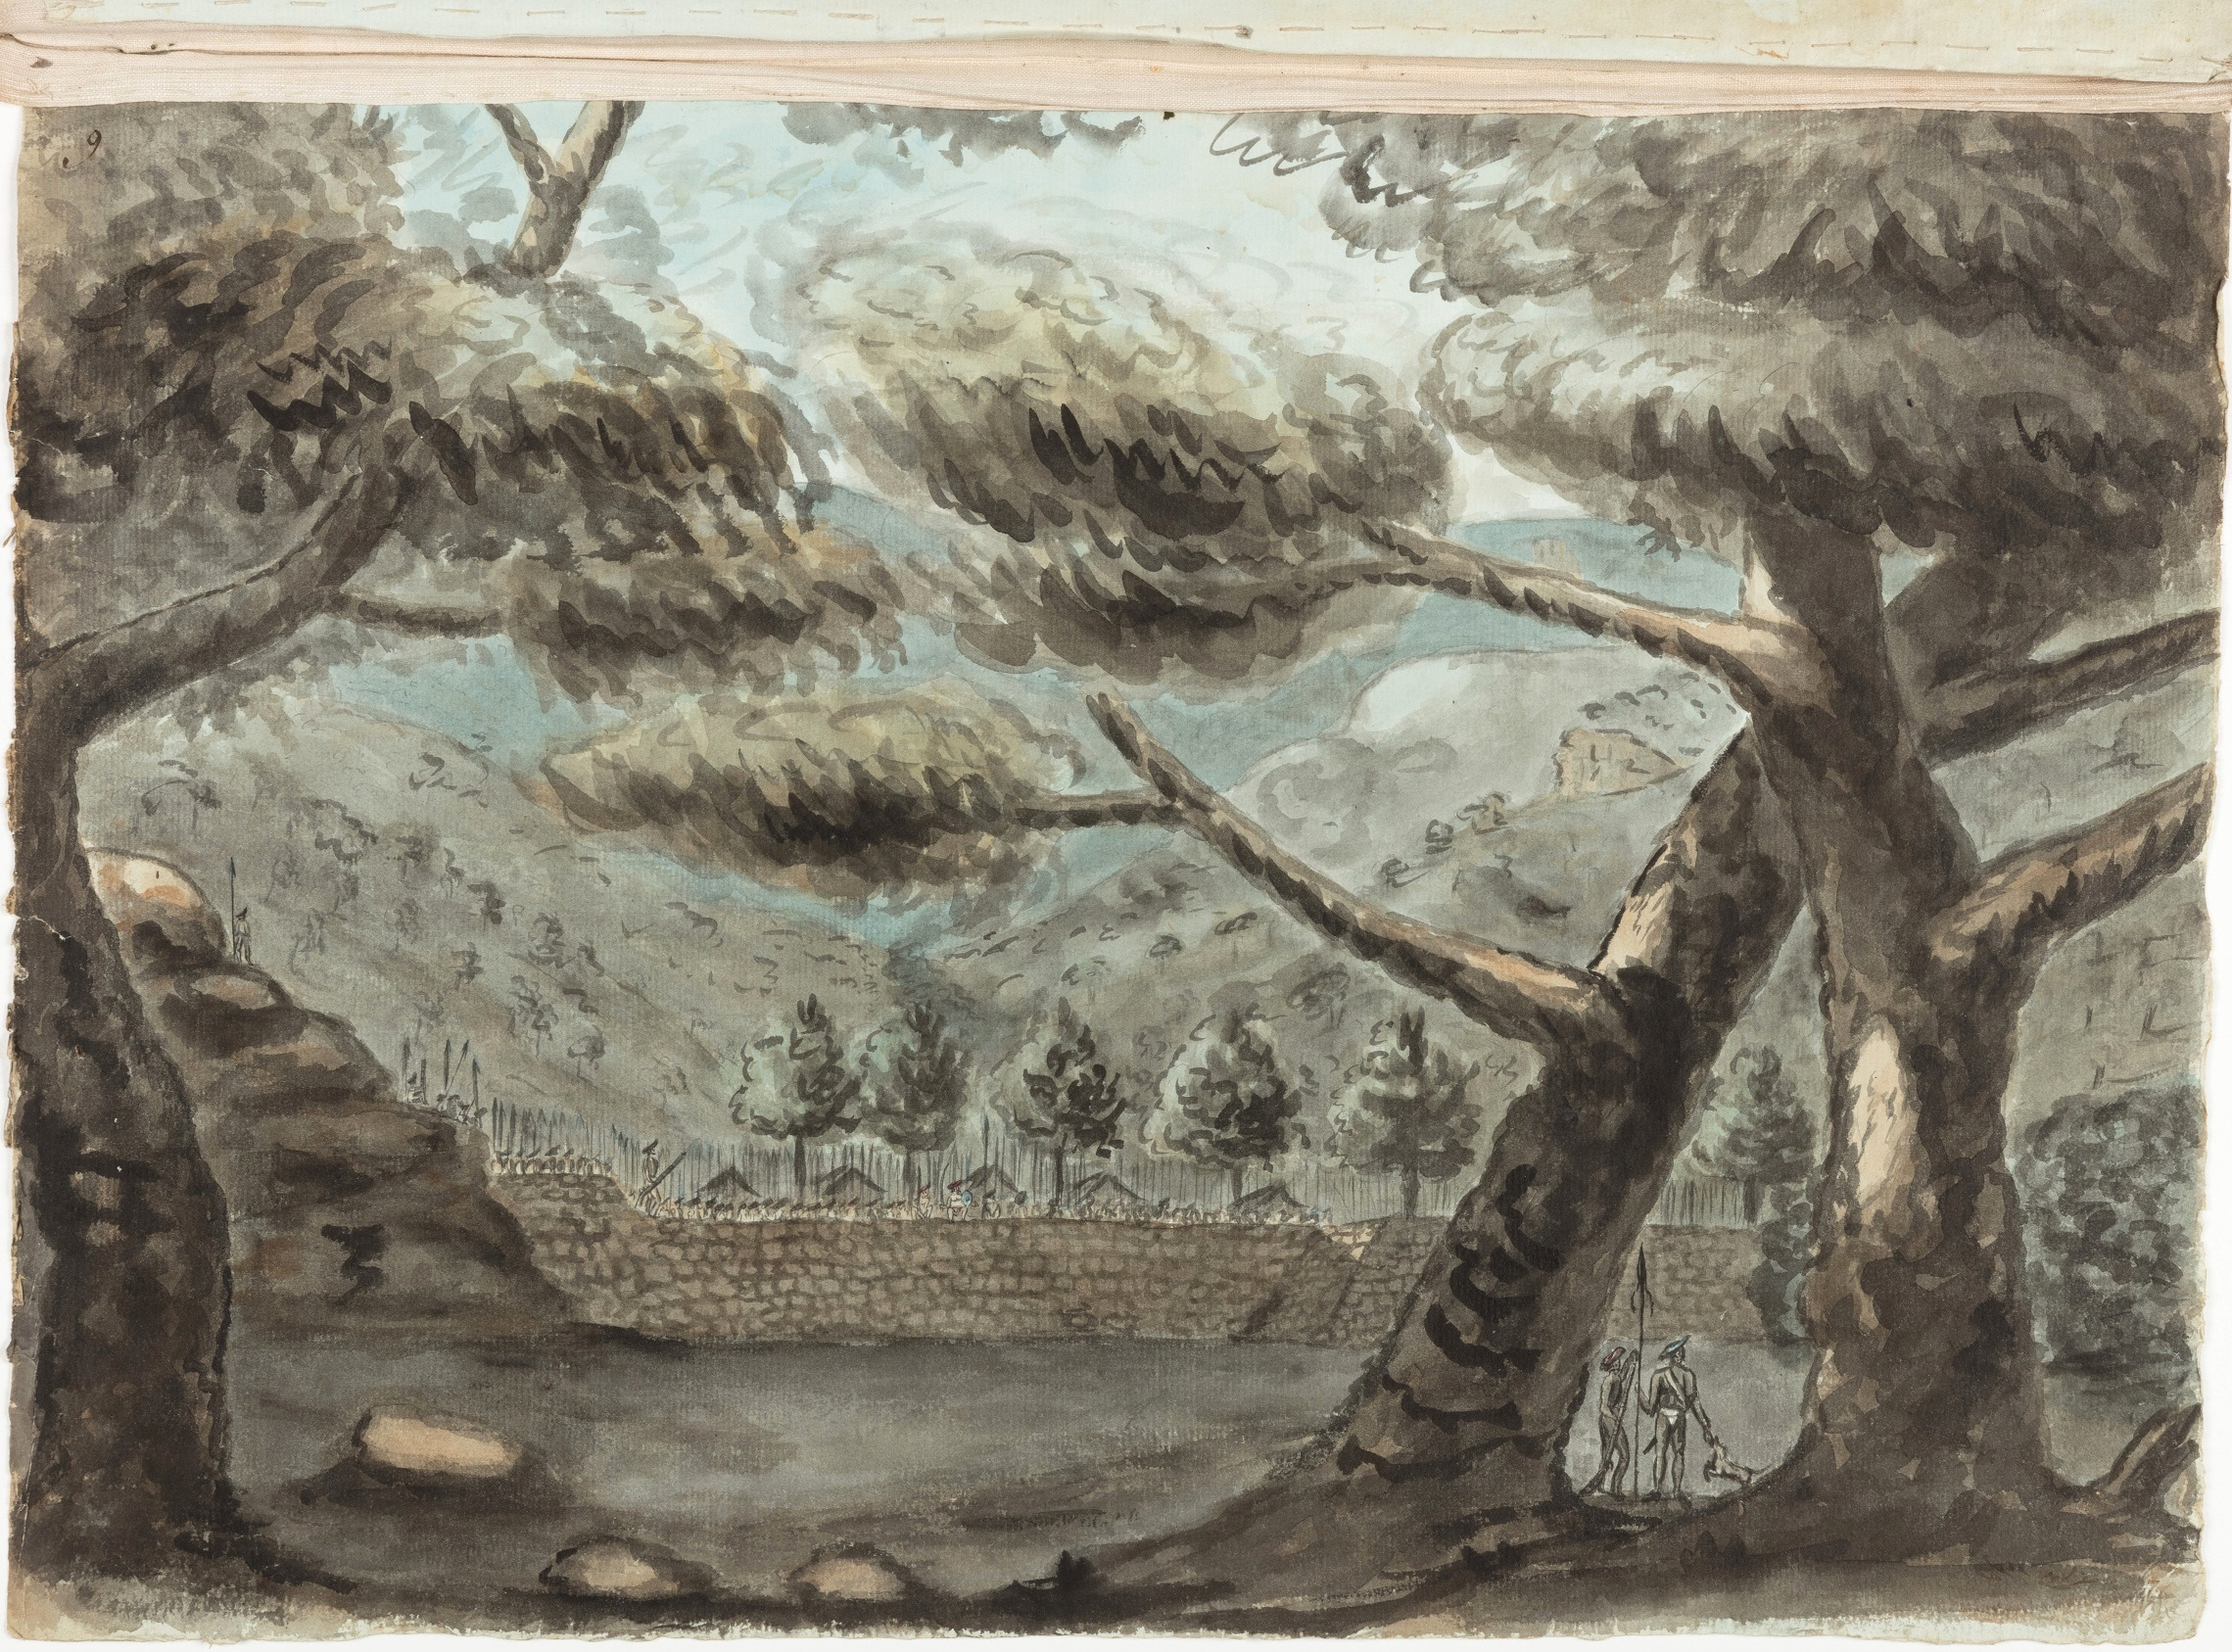 Barrier in Shivighurry Pollum defended by the Rajah against Col Maxwell's detachment